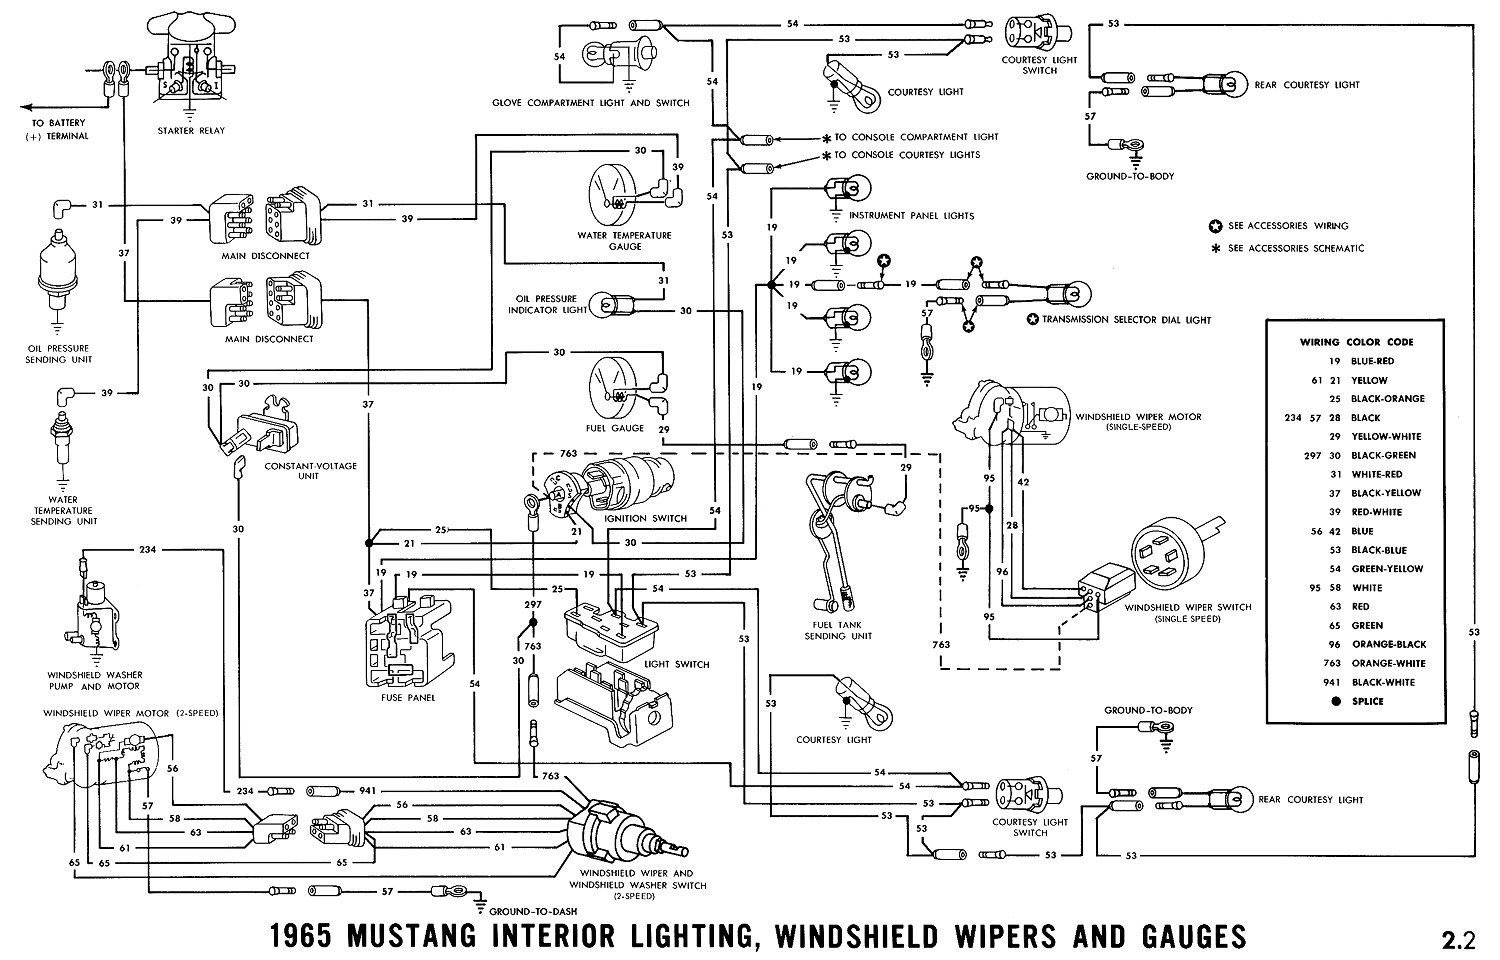 1965g 1965 mustang wiring diagrams average joe restoration 89 mustang turn signal wiring diagram at fashall.co